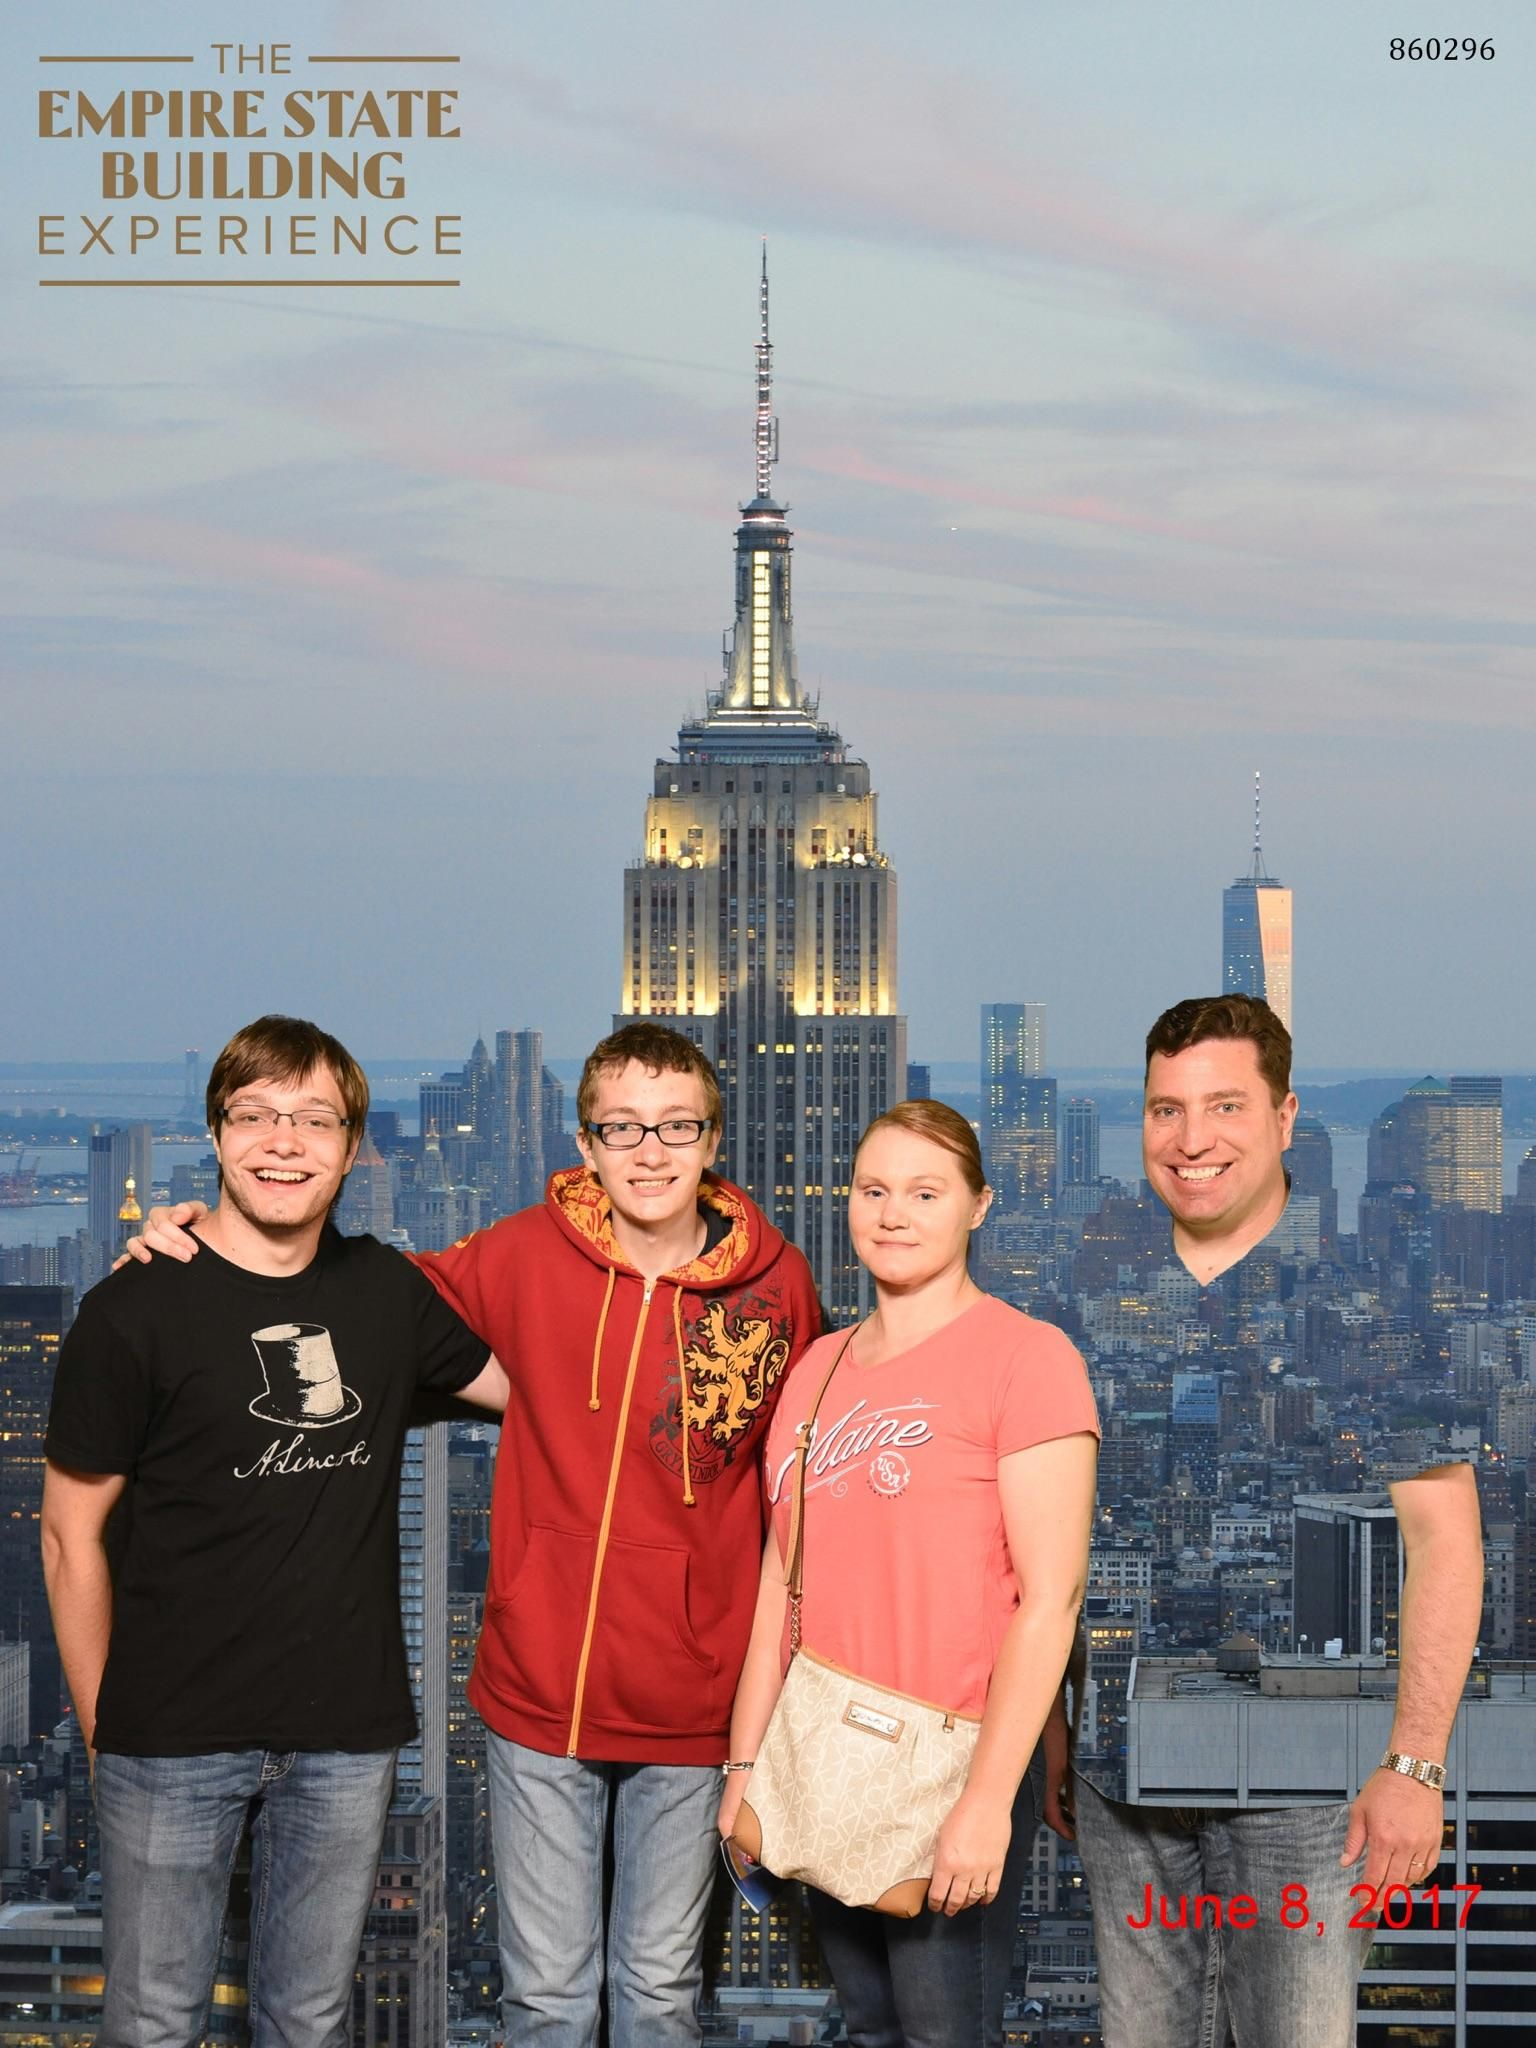 So my dad wore a green shirt to the Empire State Building tour...